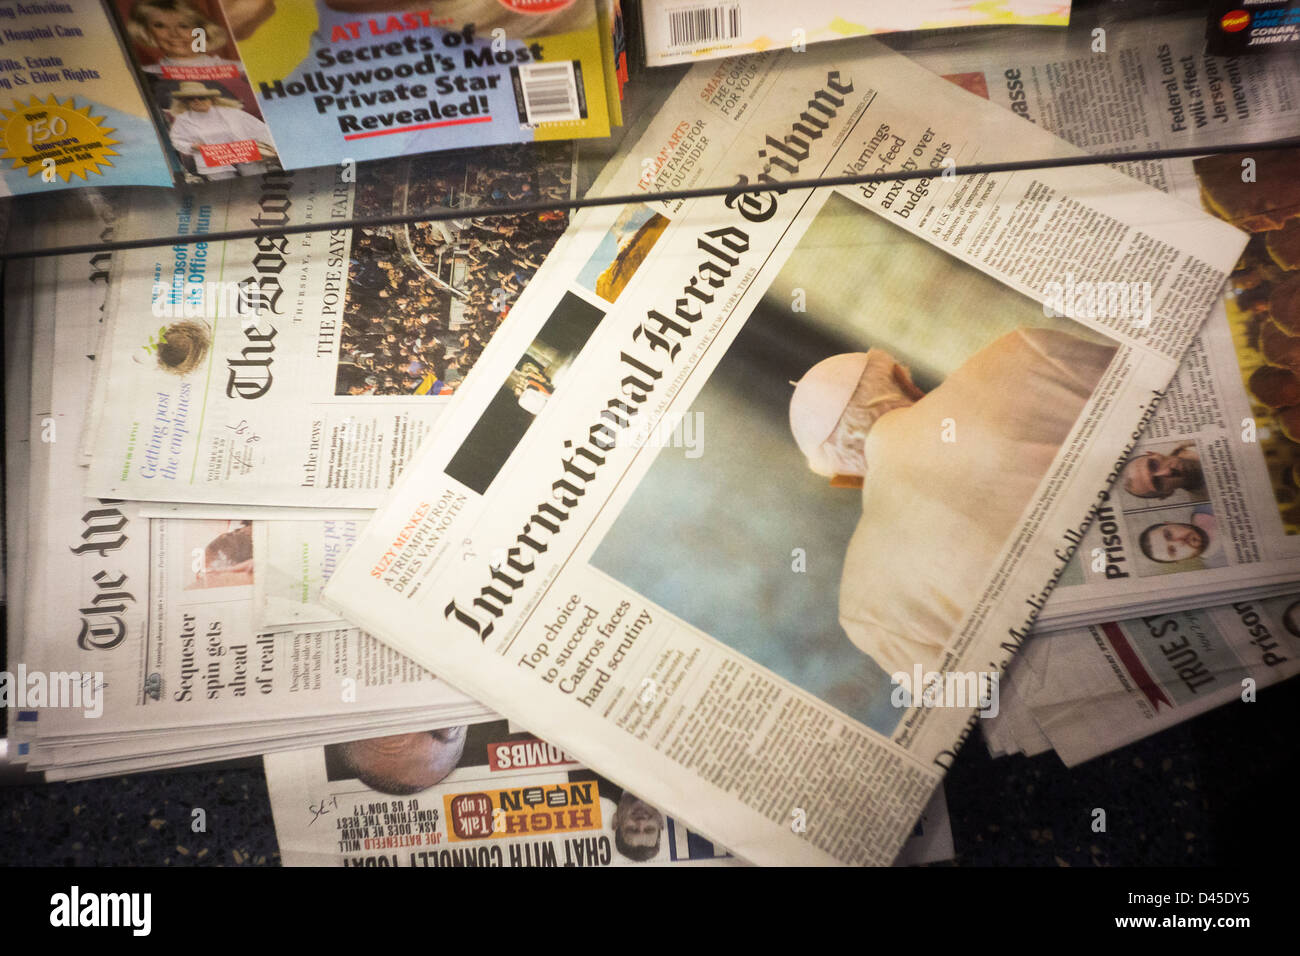 International Herald Tribune Stock Photos & International Herald Tribune Stock Images - Alamy